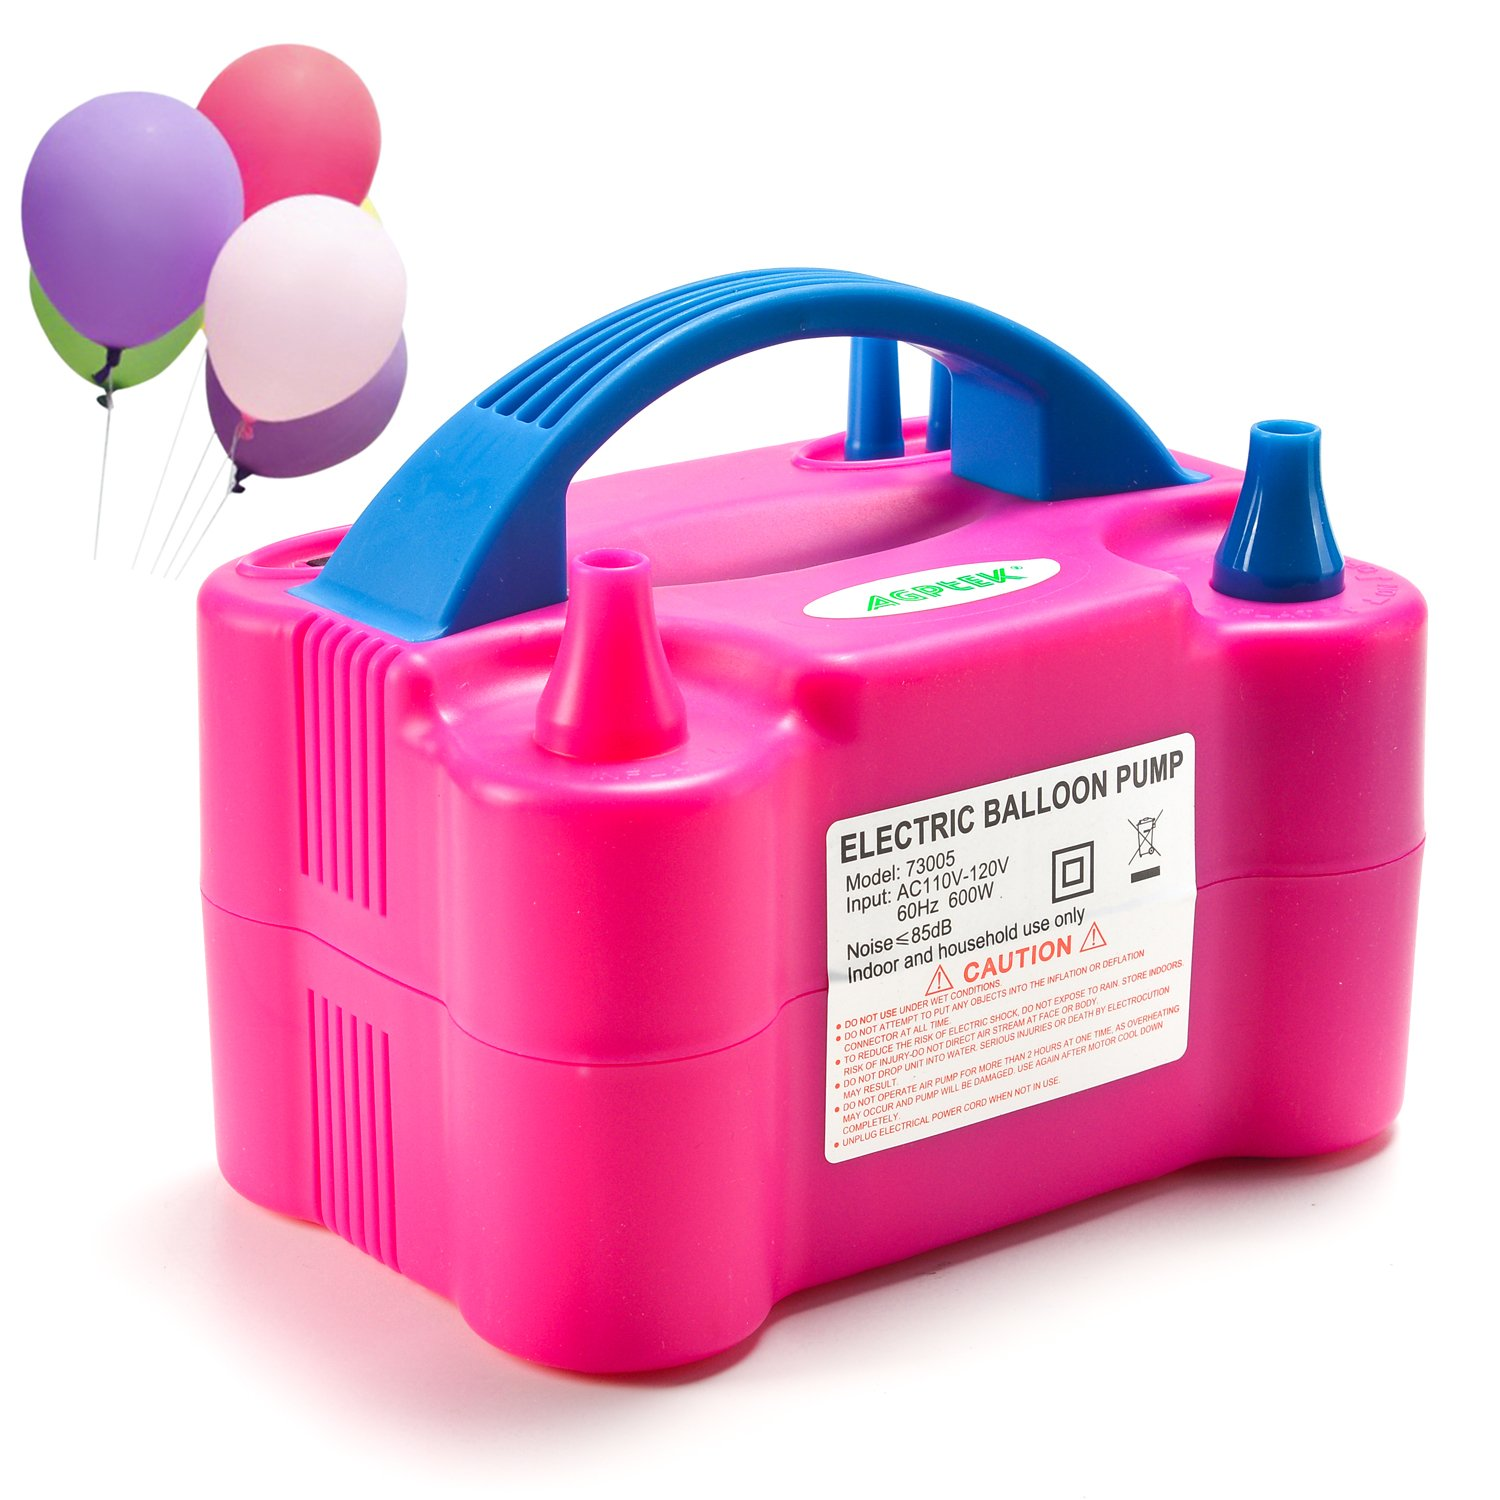 AGPTEK Electric Air Balloon Pump, 110V 600W Rose Red Portable Dual Nozzle Inflator/Blower Party Decoration